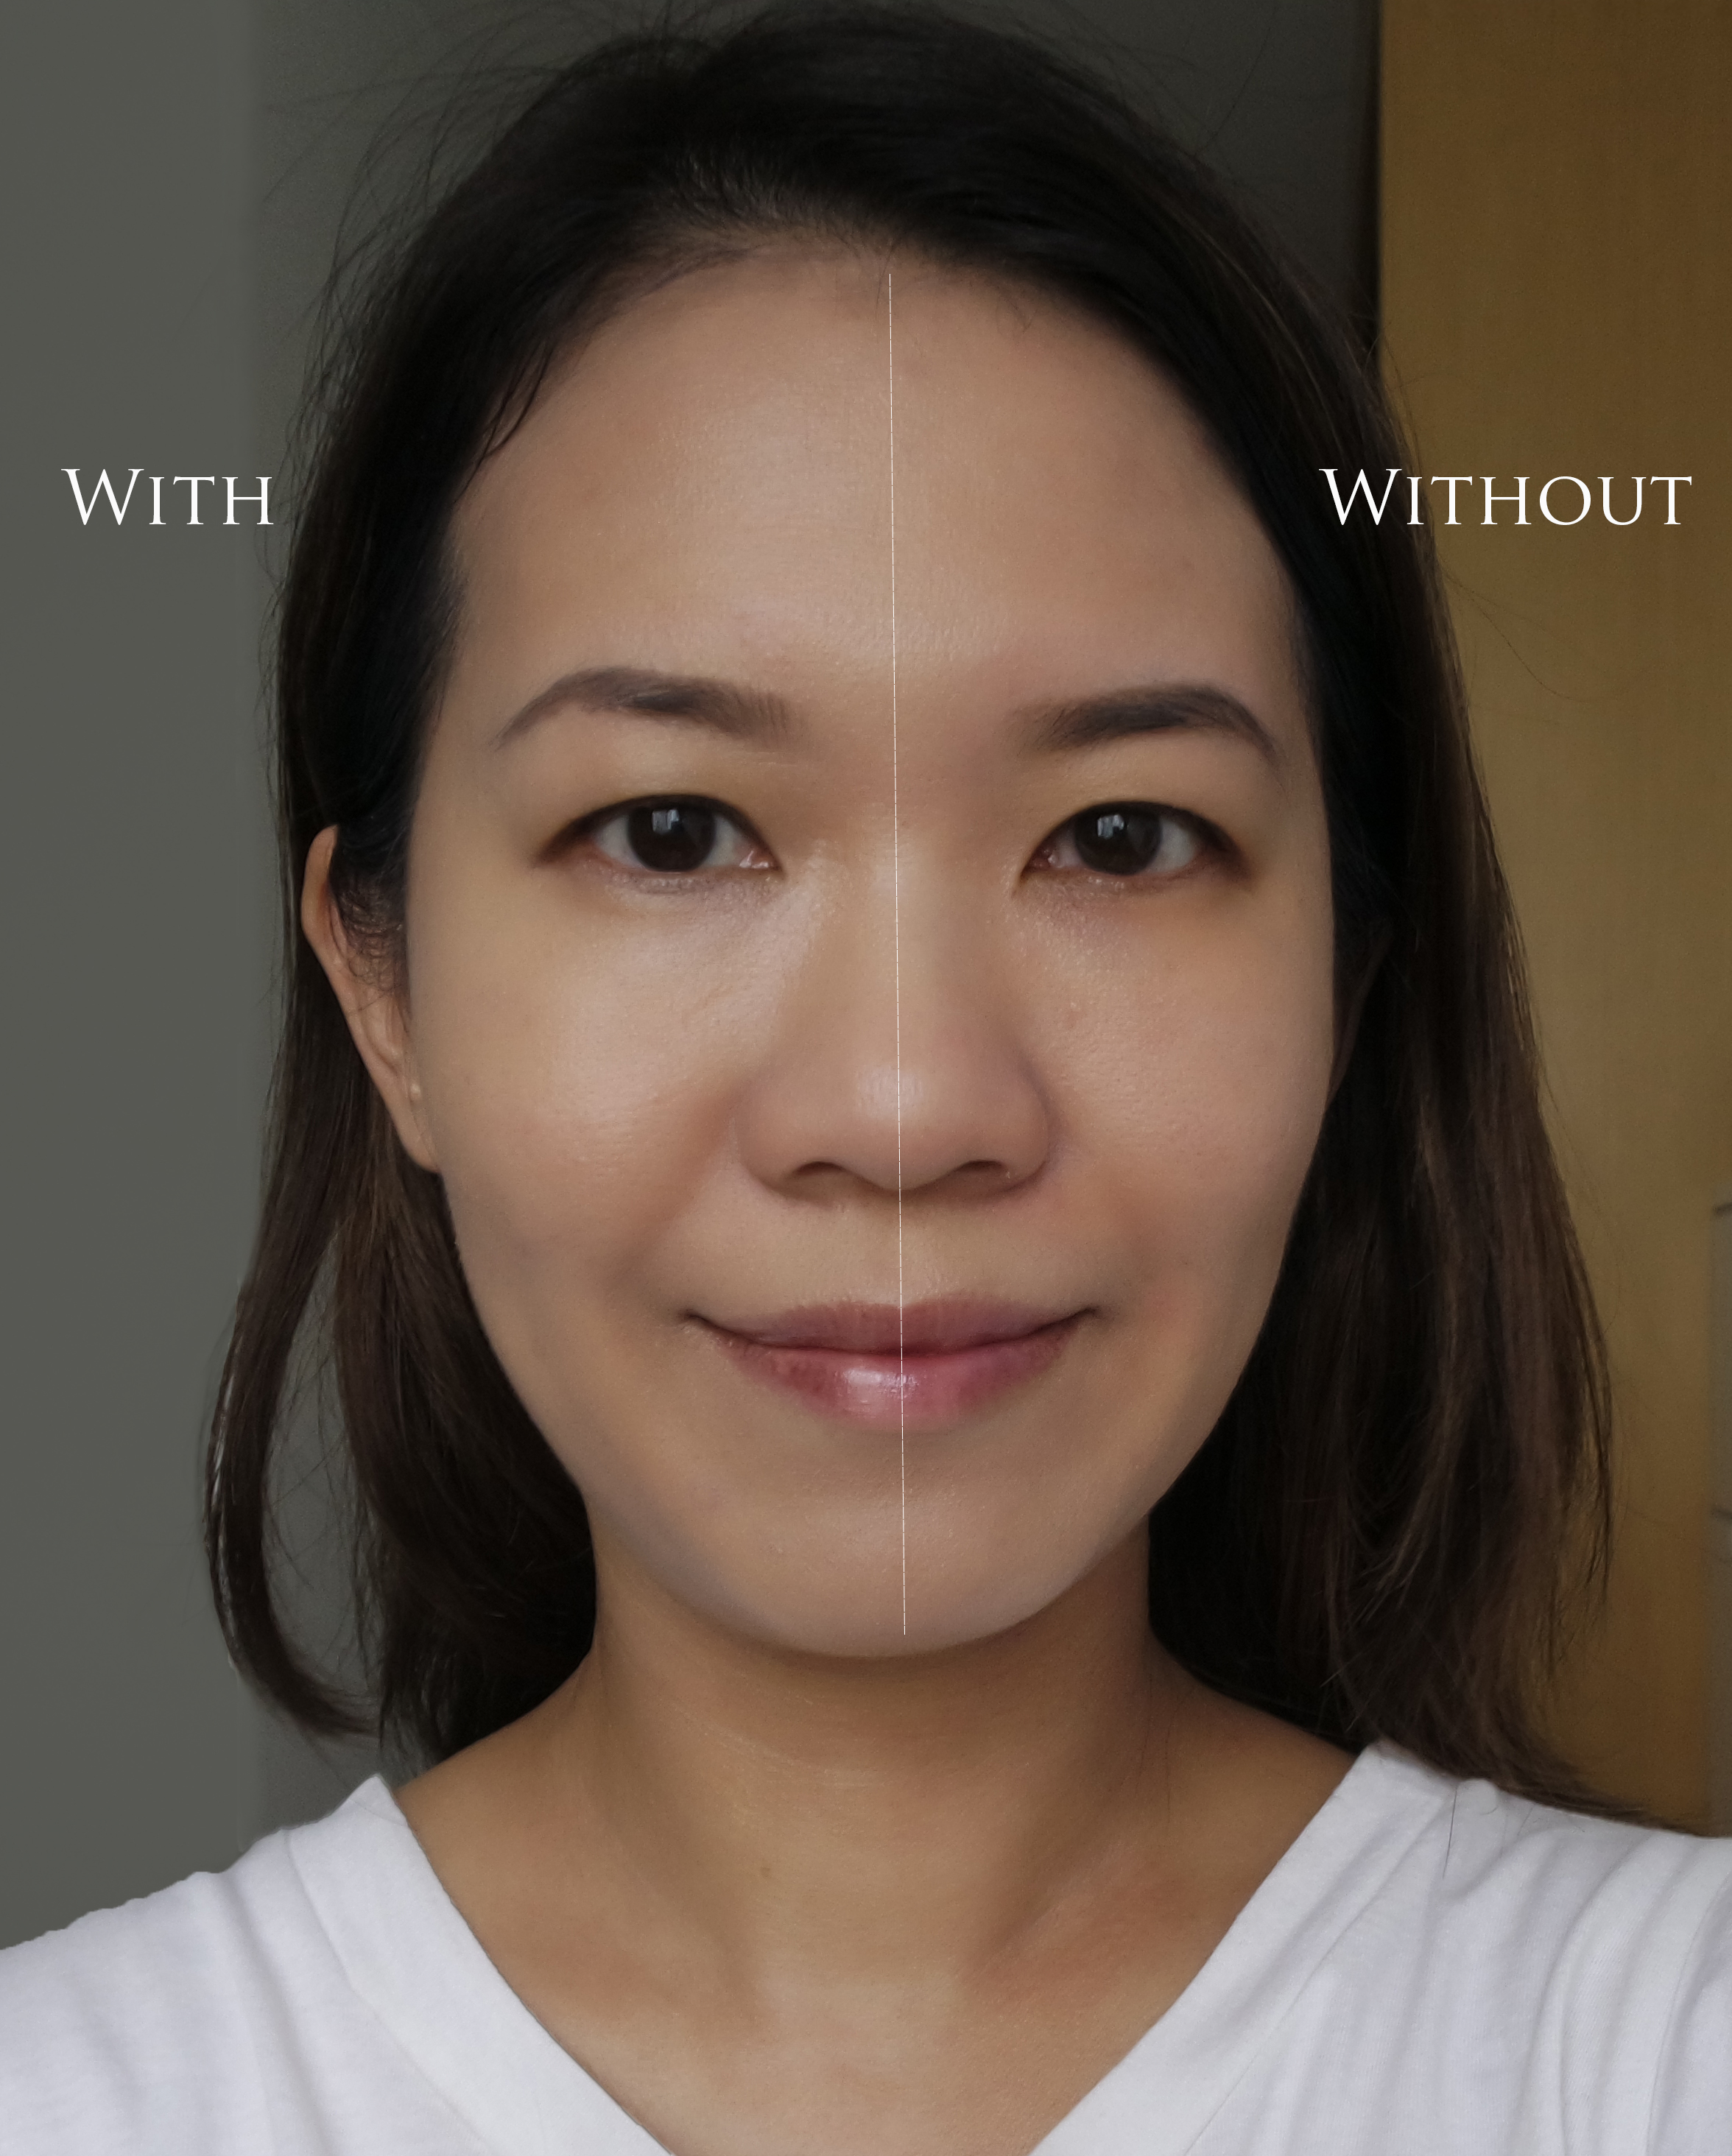 SUQQU Extra Rich Cream Foundation before after comparison